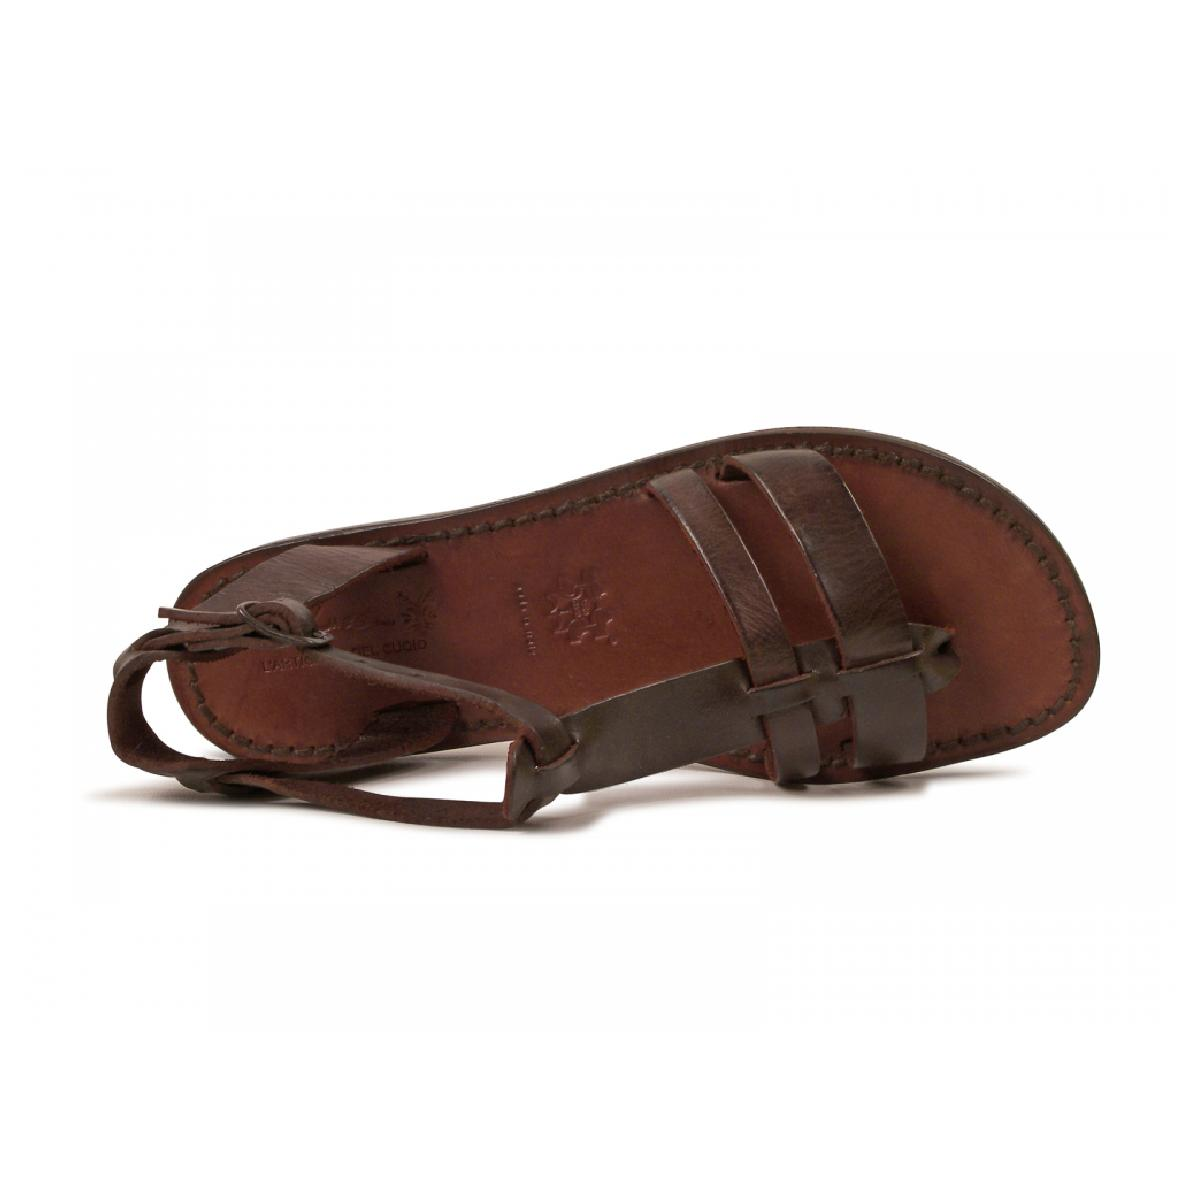 Women S Leather Flat Brown Sandals Handmade In Italy